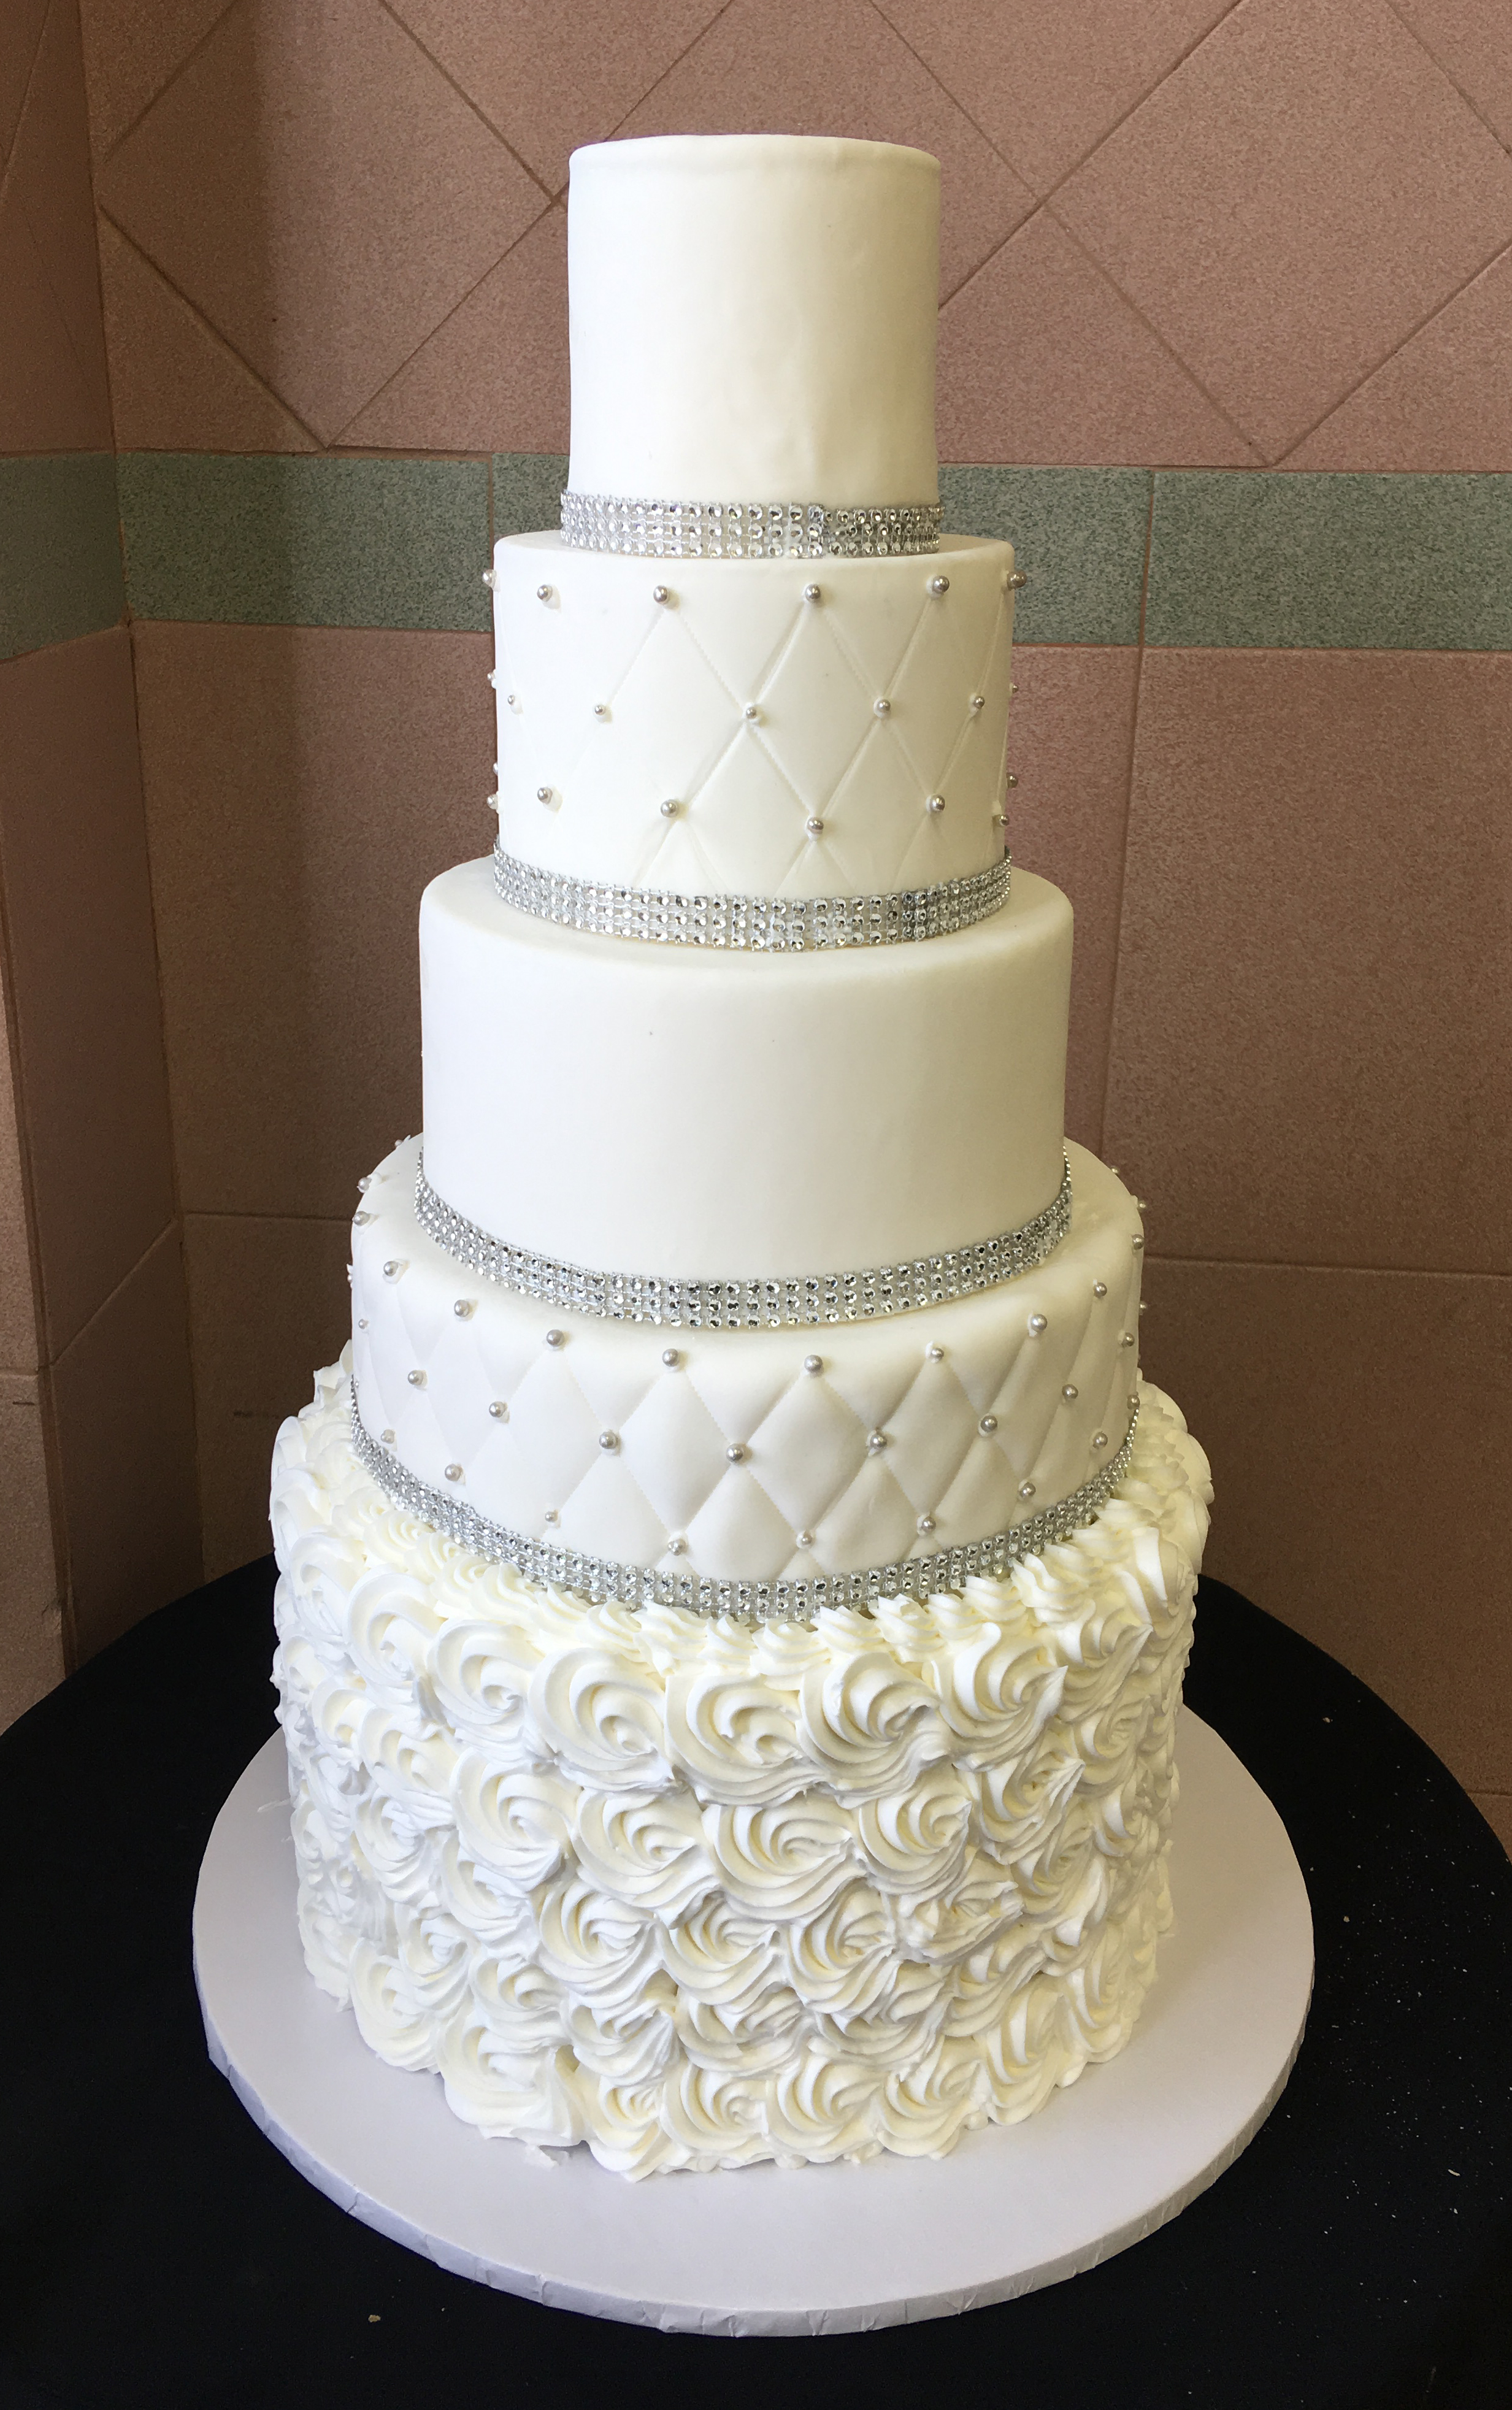 Large Rosette With Rolled Fondant Quilted & Faux Crystals.jpg